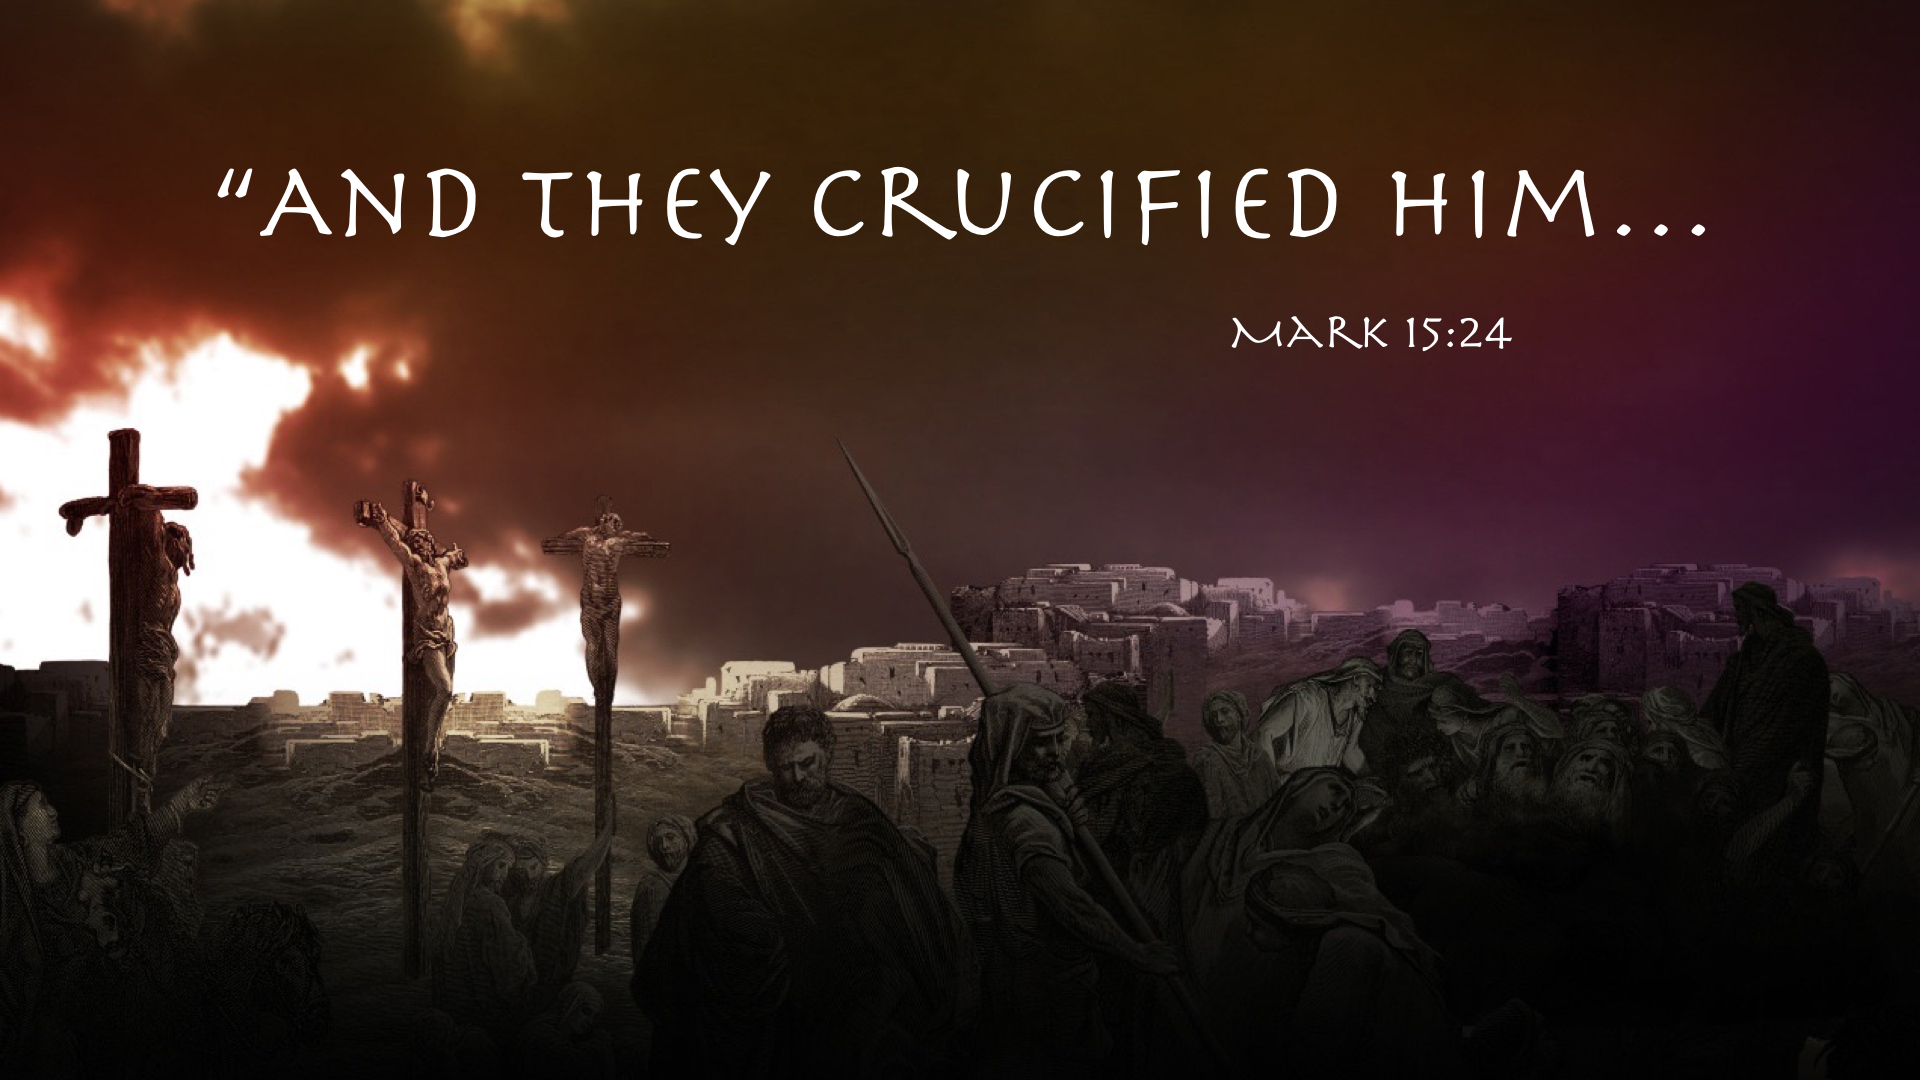 https://kitwechurch.files.wordpress.com/2015/04/and-they-crucified-him-001.jpg?w=1920&h=1080